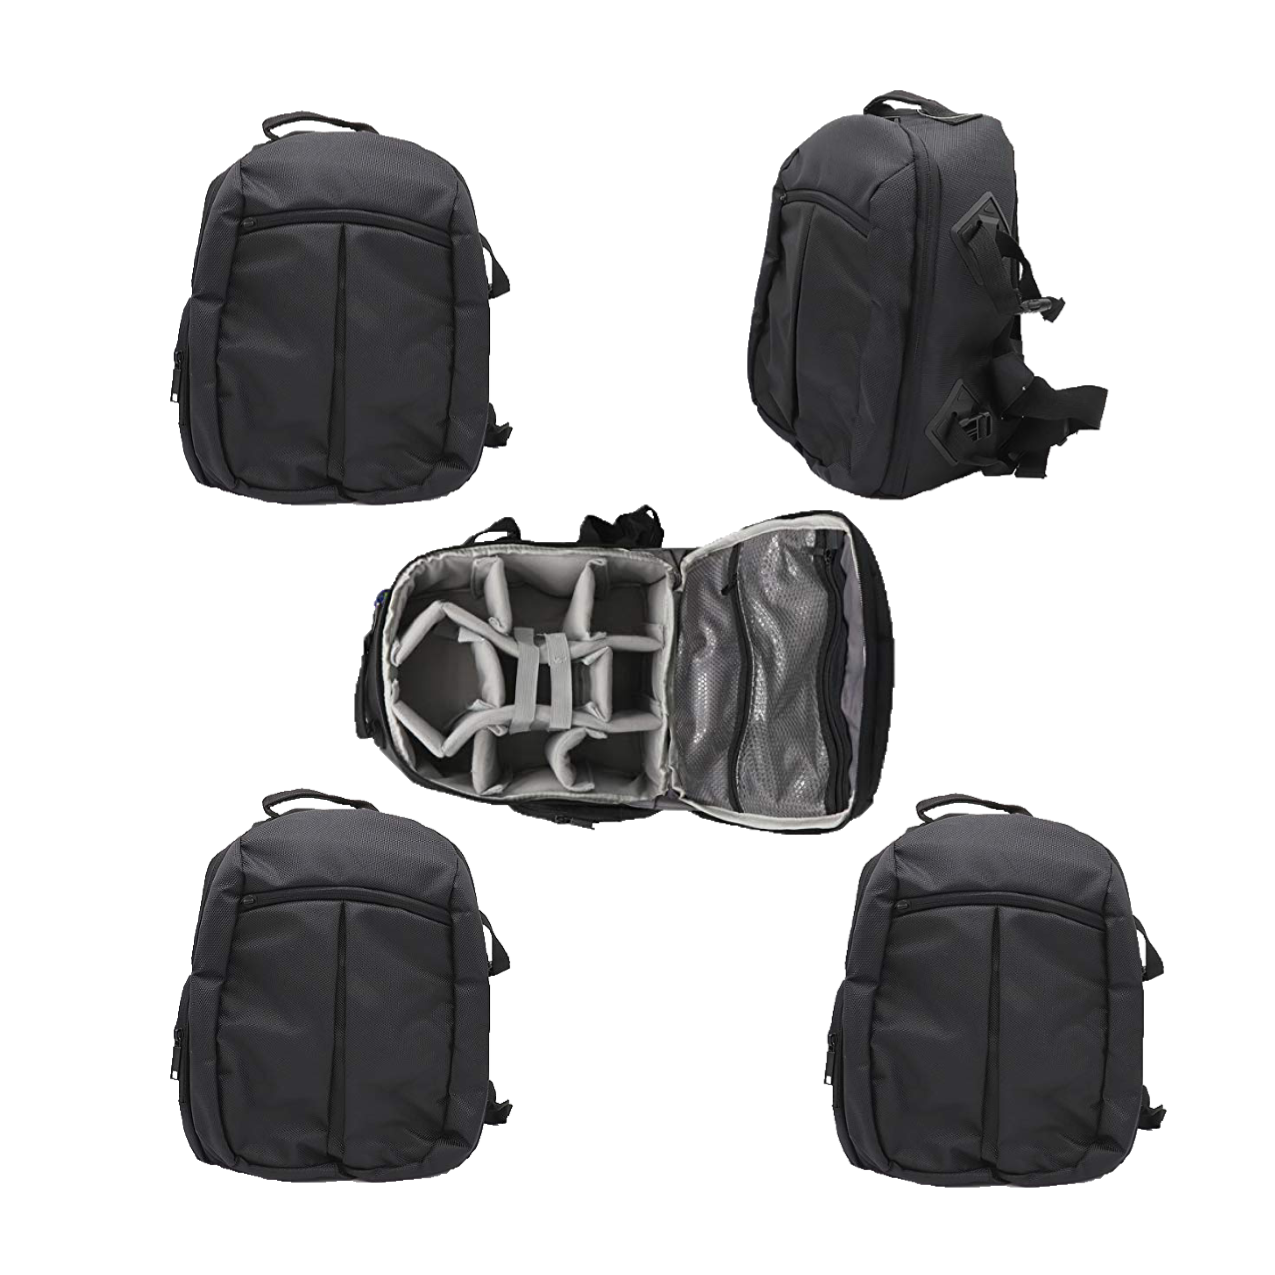 Solibag Slr Camera Travel Backpack Waterproof Carry Bag For Canon, Nikon, Sony, Pentax Black Shoulder Case -7001 Pack Of 5Pcs Camera Bags Camera Bags